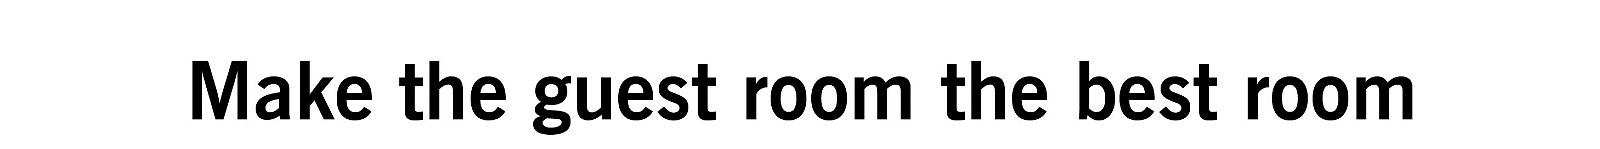 Make the guestroom the best room